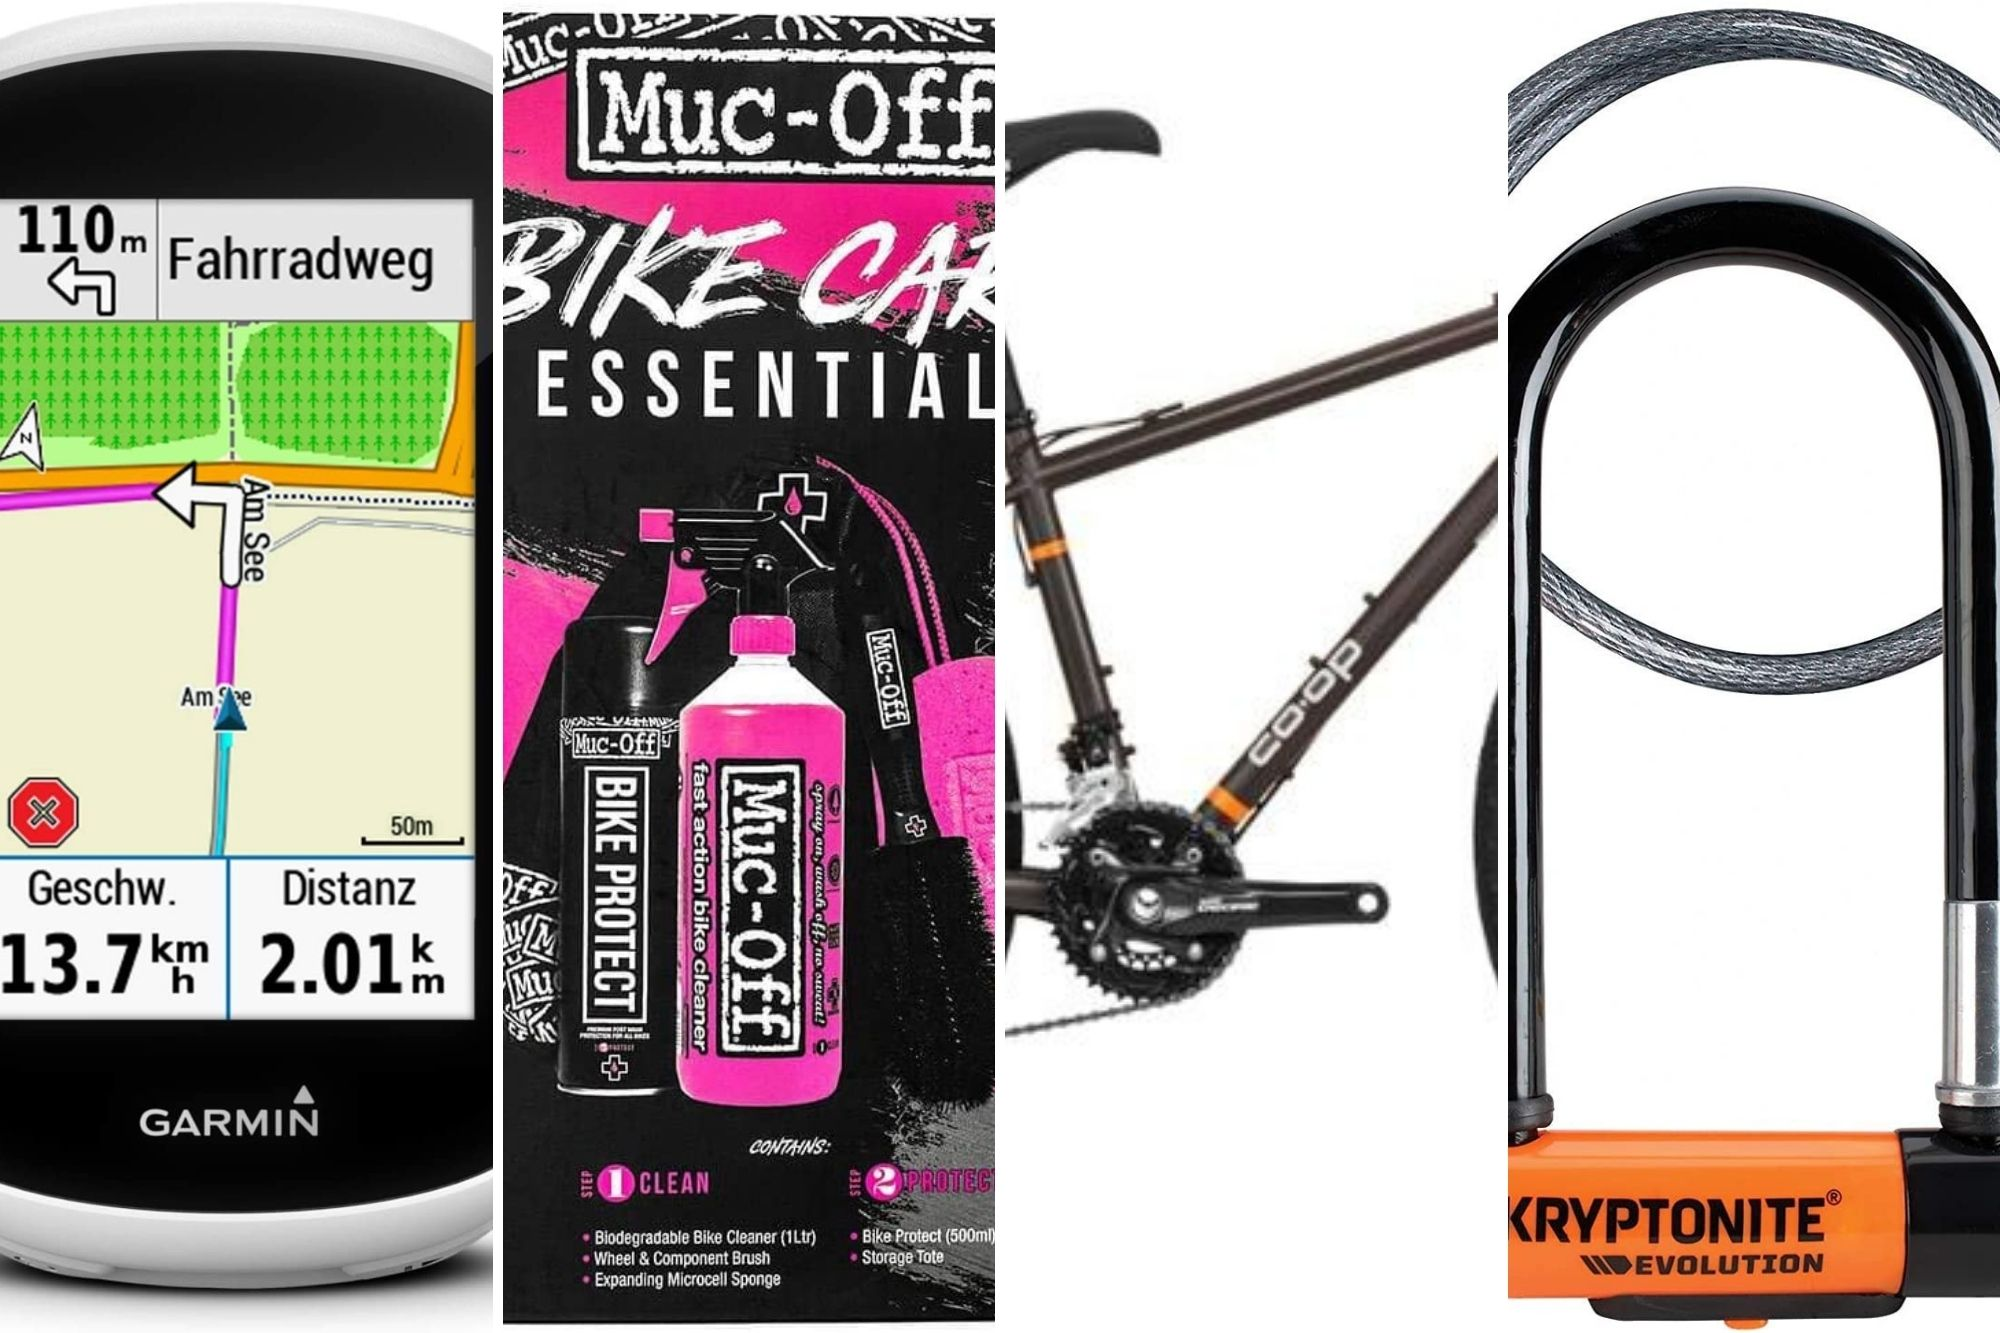 Amazon Prime Day cycling deals: What to buy before the deals end - Cycling Weekly